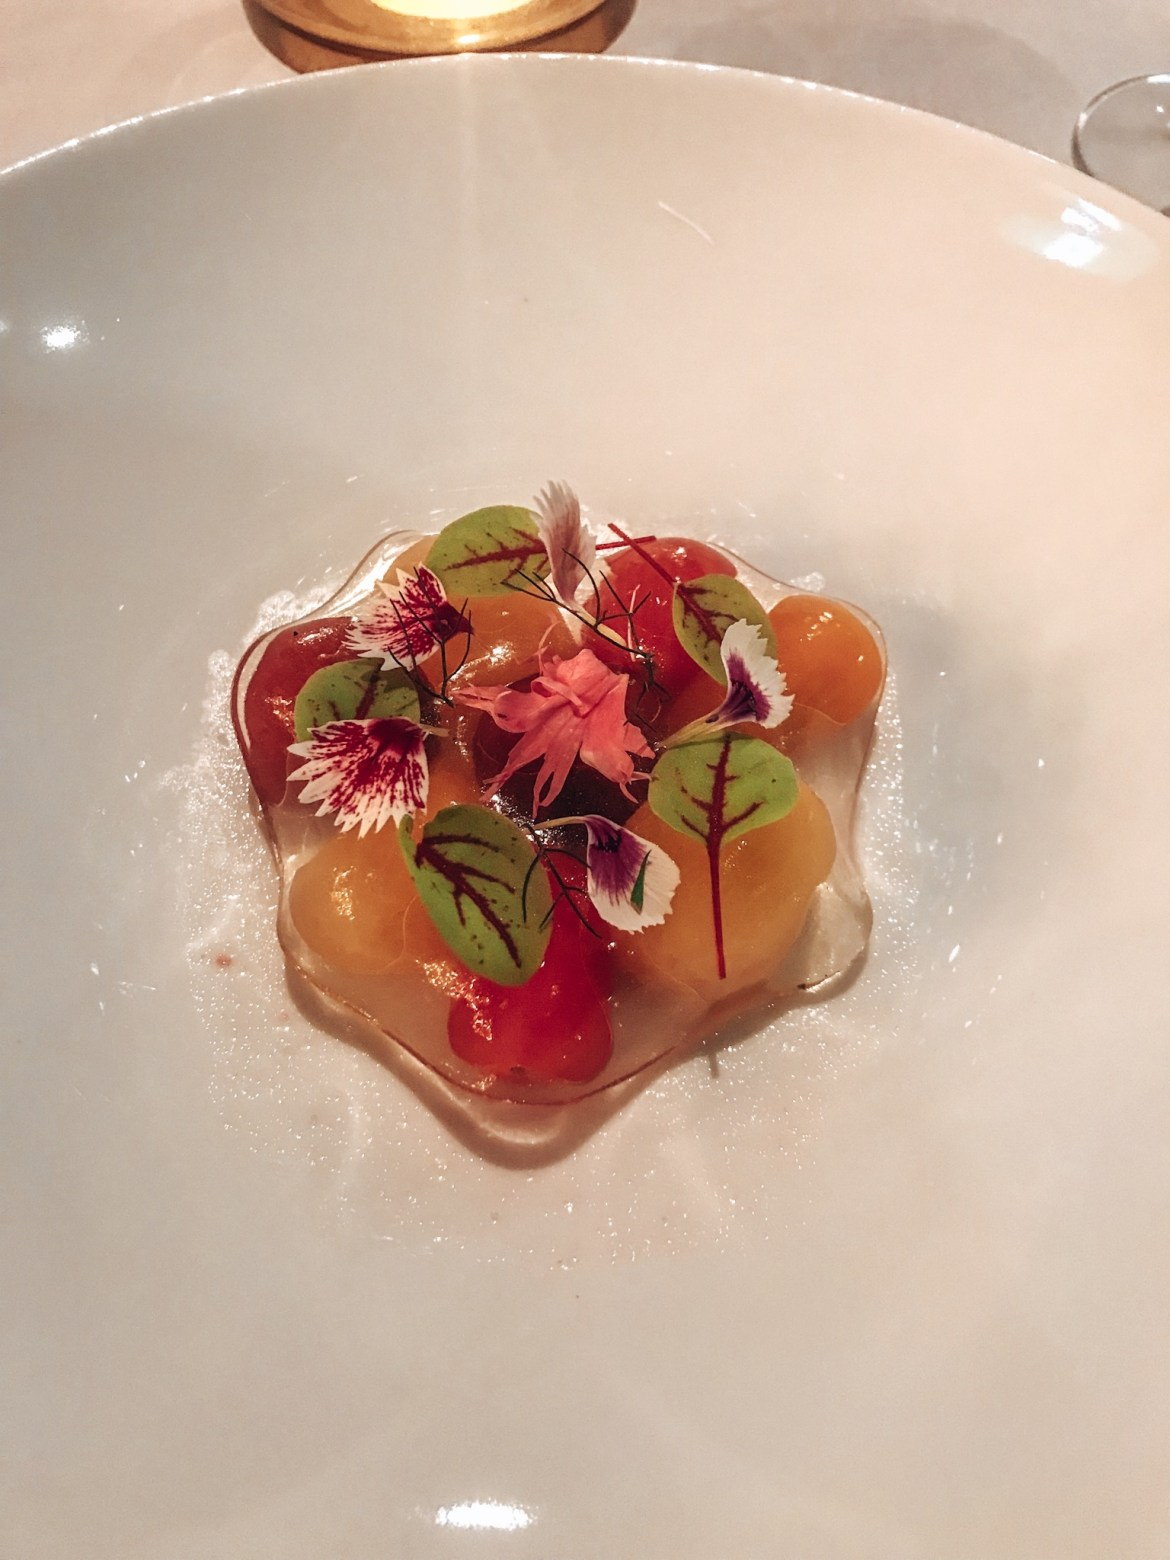 Plate of tomatoes and flowers coated in jelly